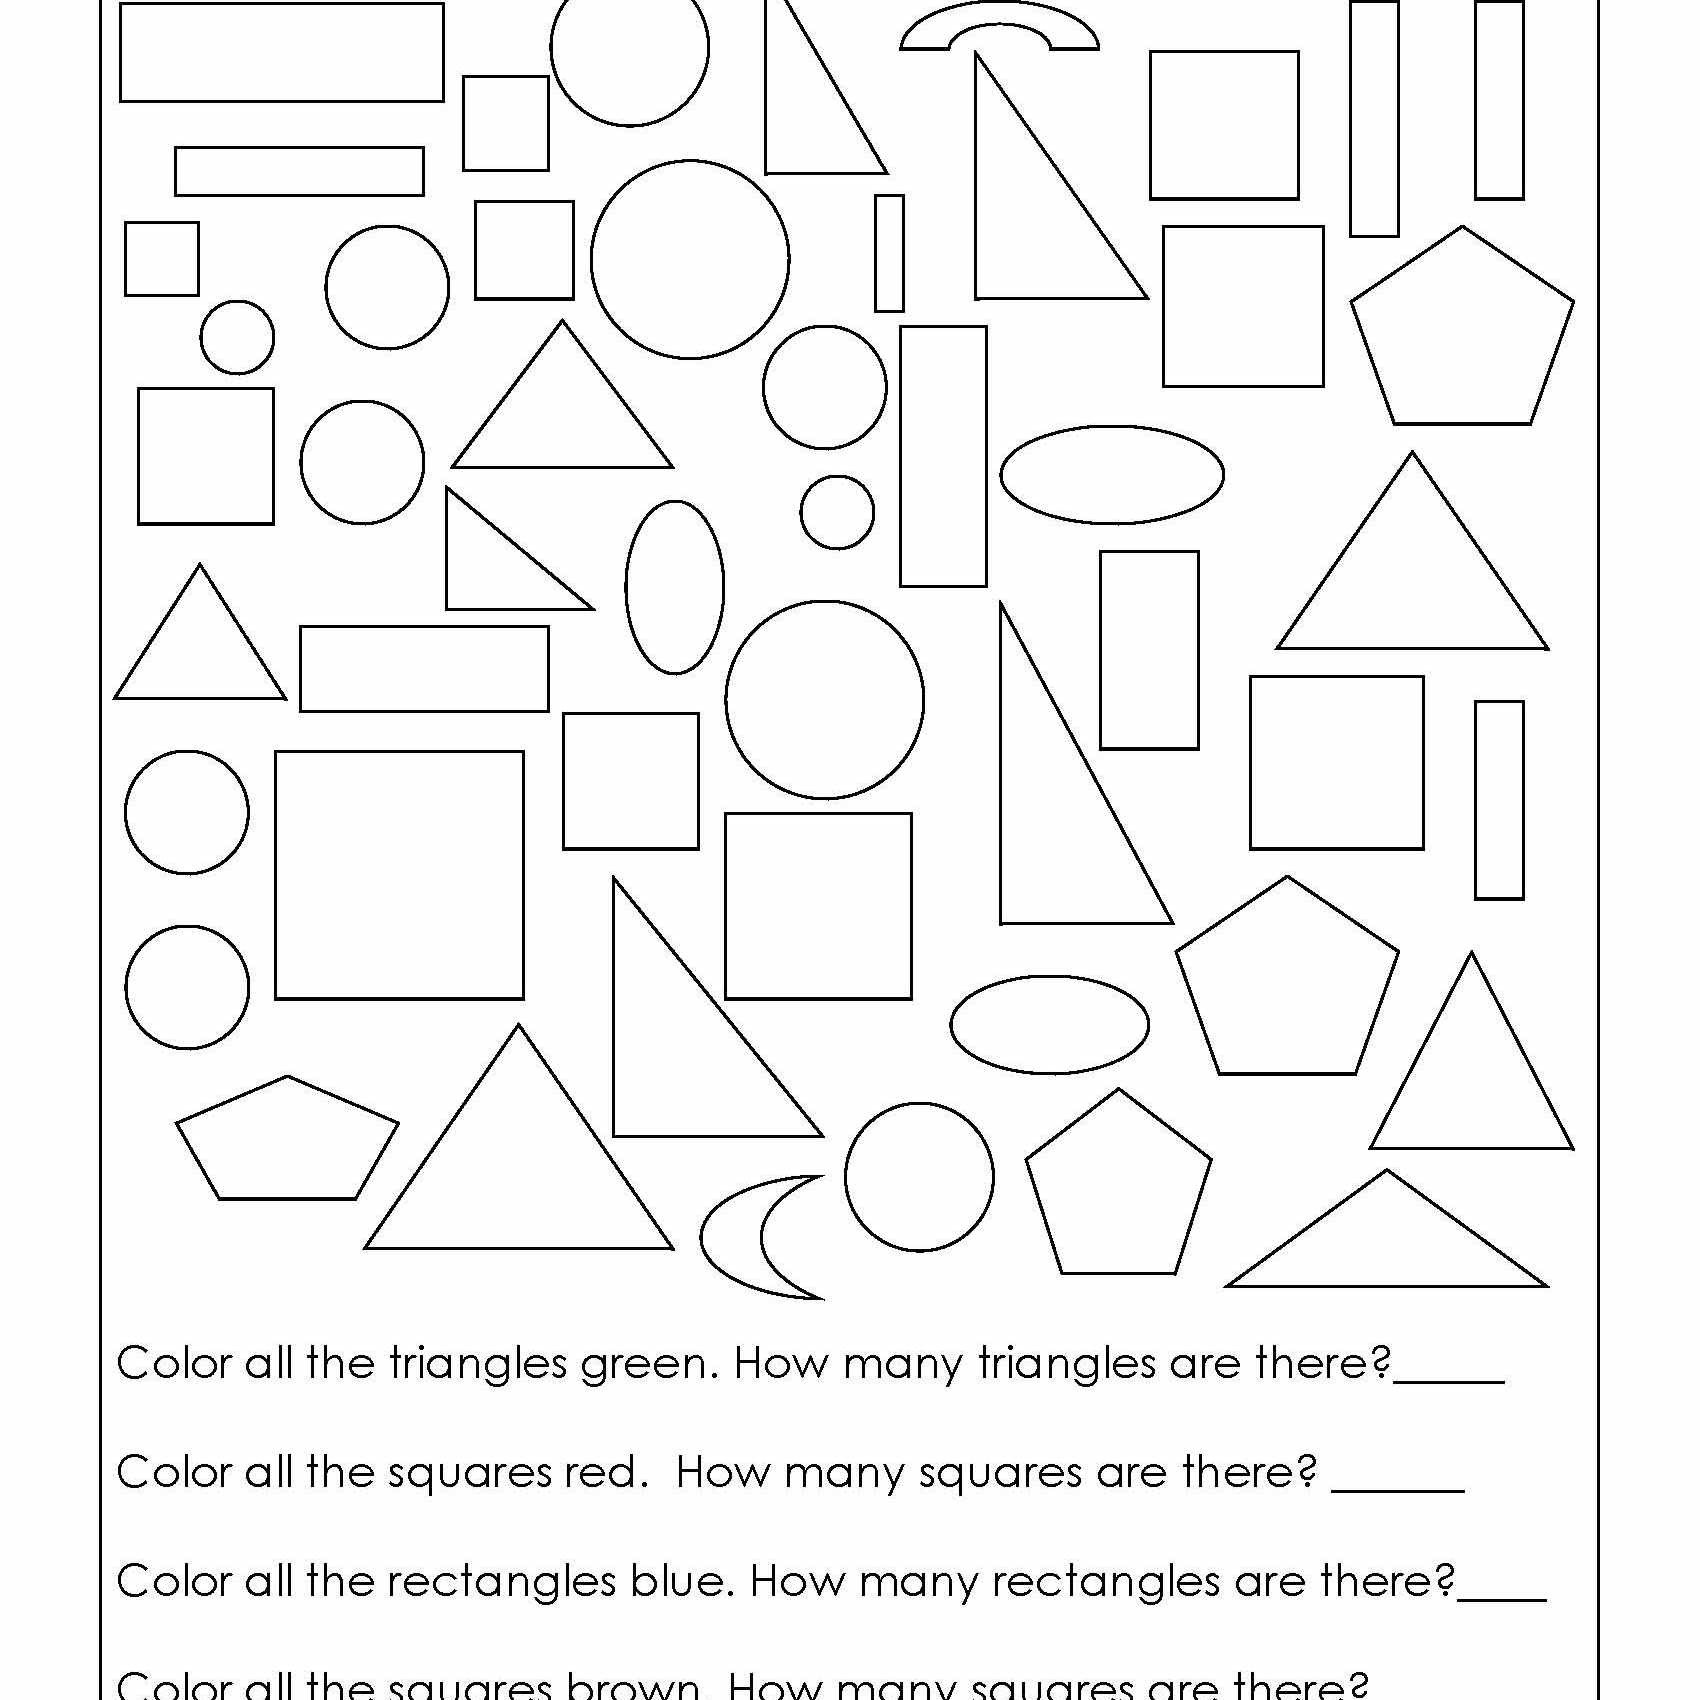 Two Dimensional Shapes Worksheet Geometry Worksheets for Students In 1st Grade